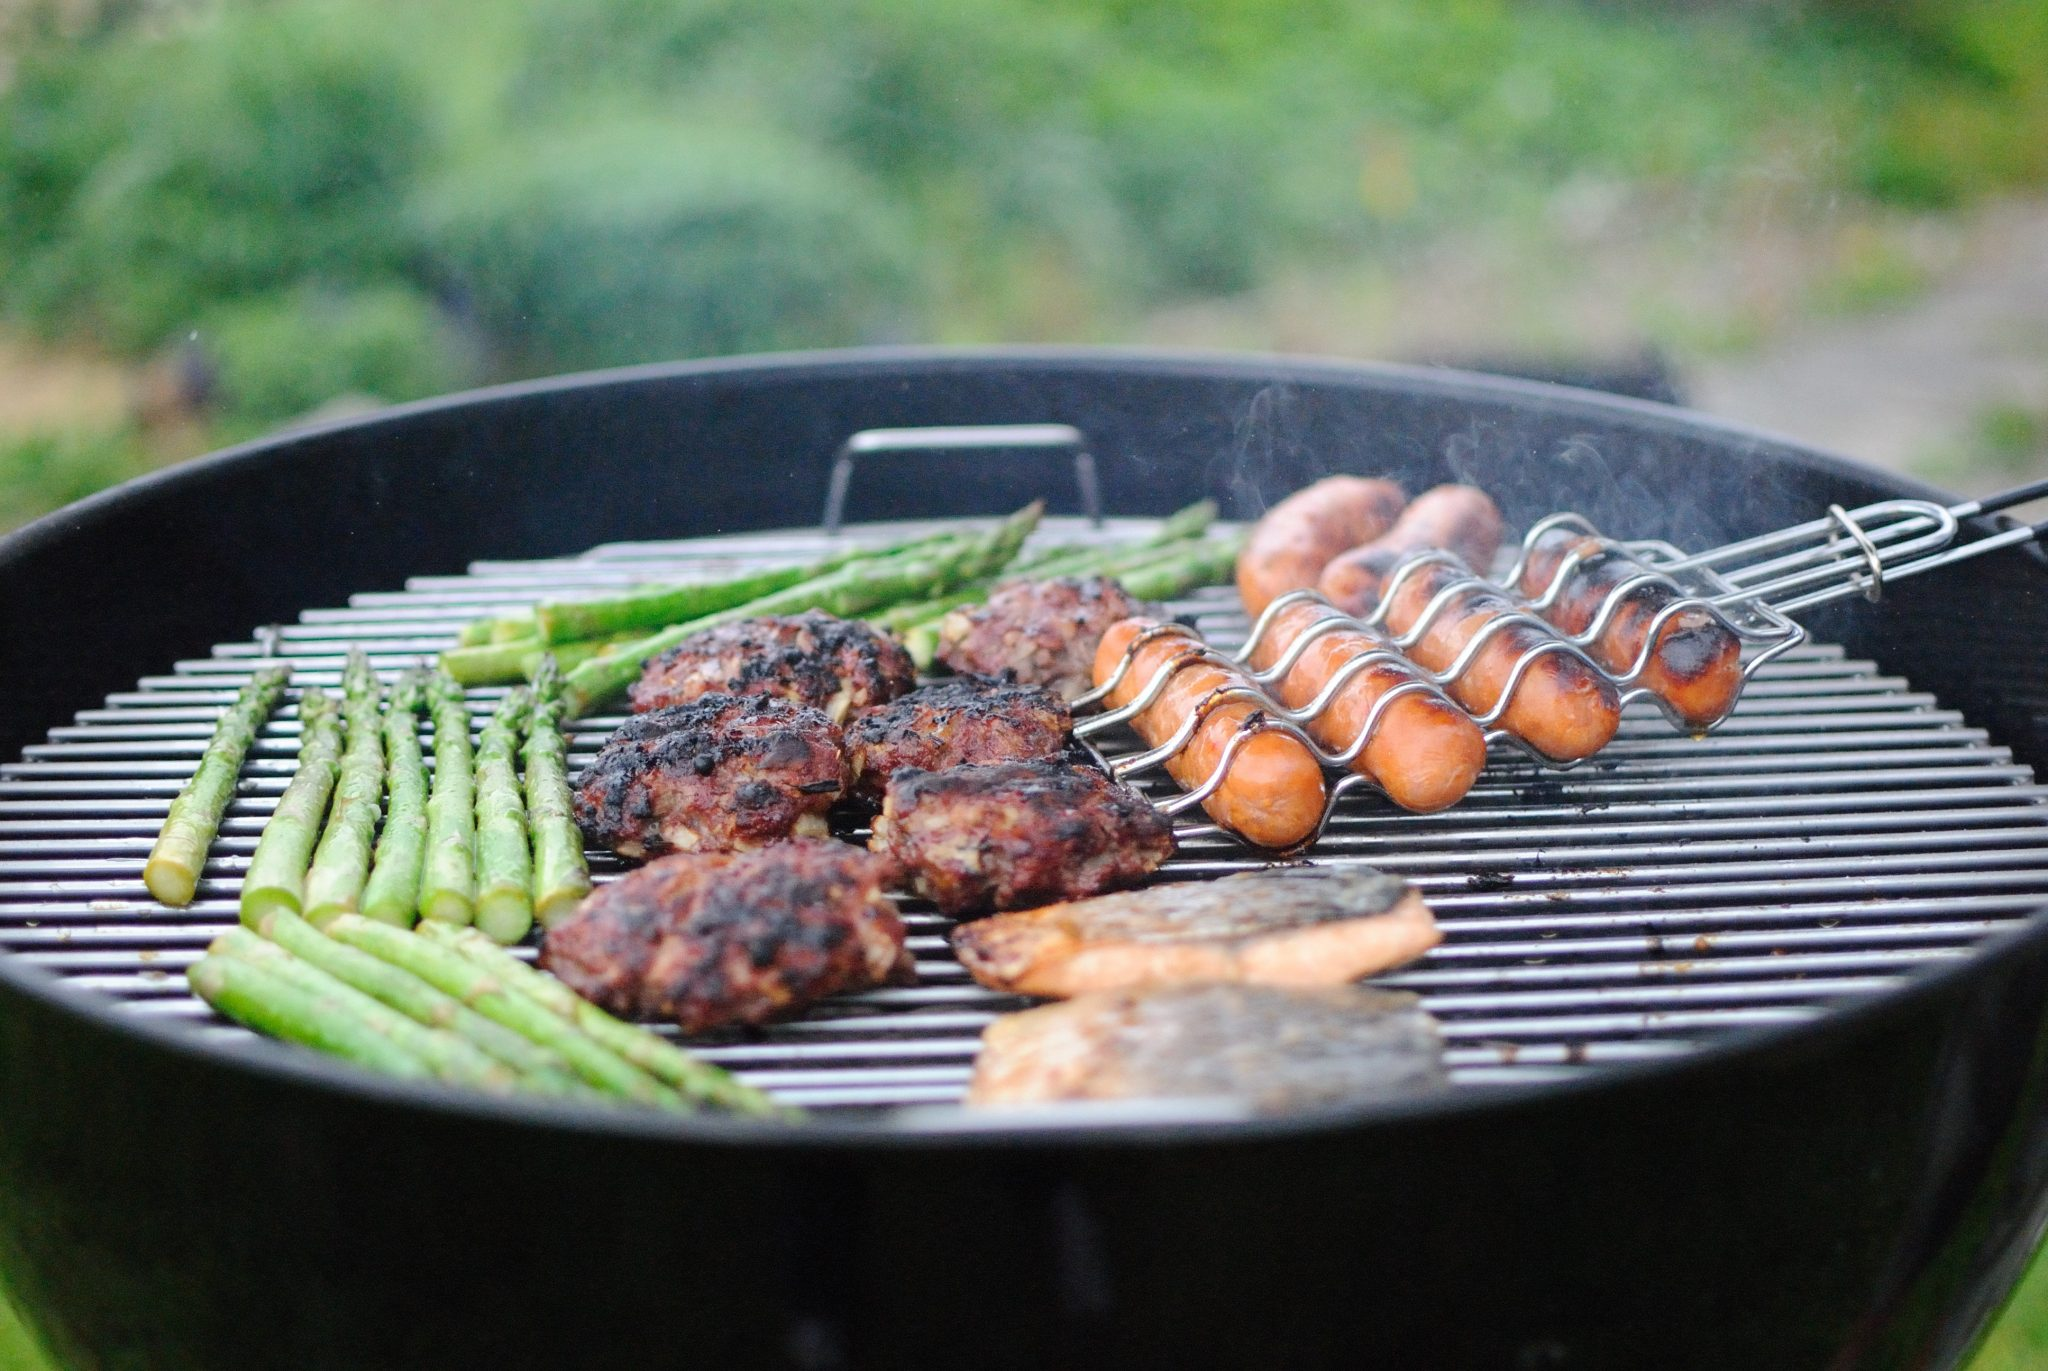 Grilling outdoors at Tailgate for Football Game Catered